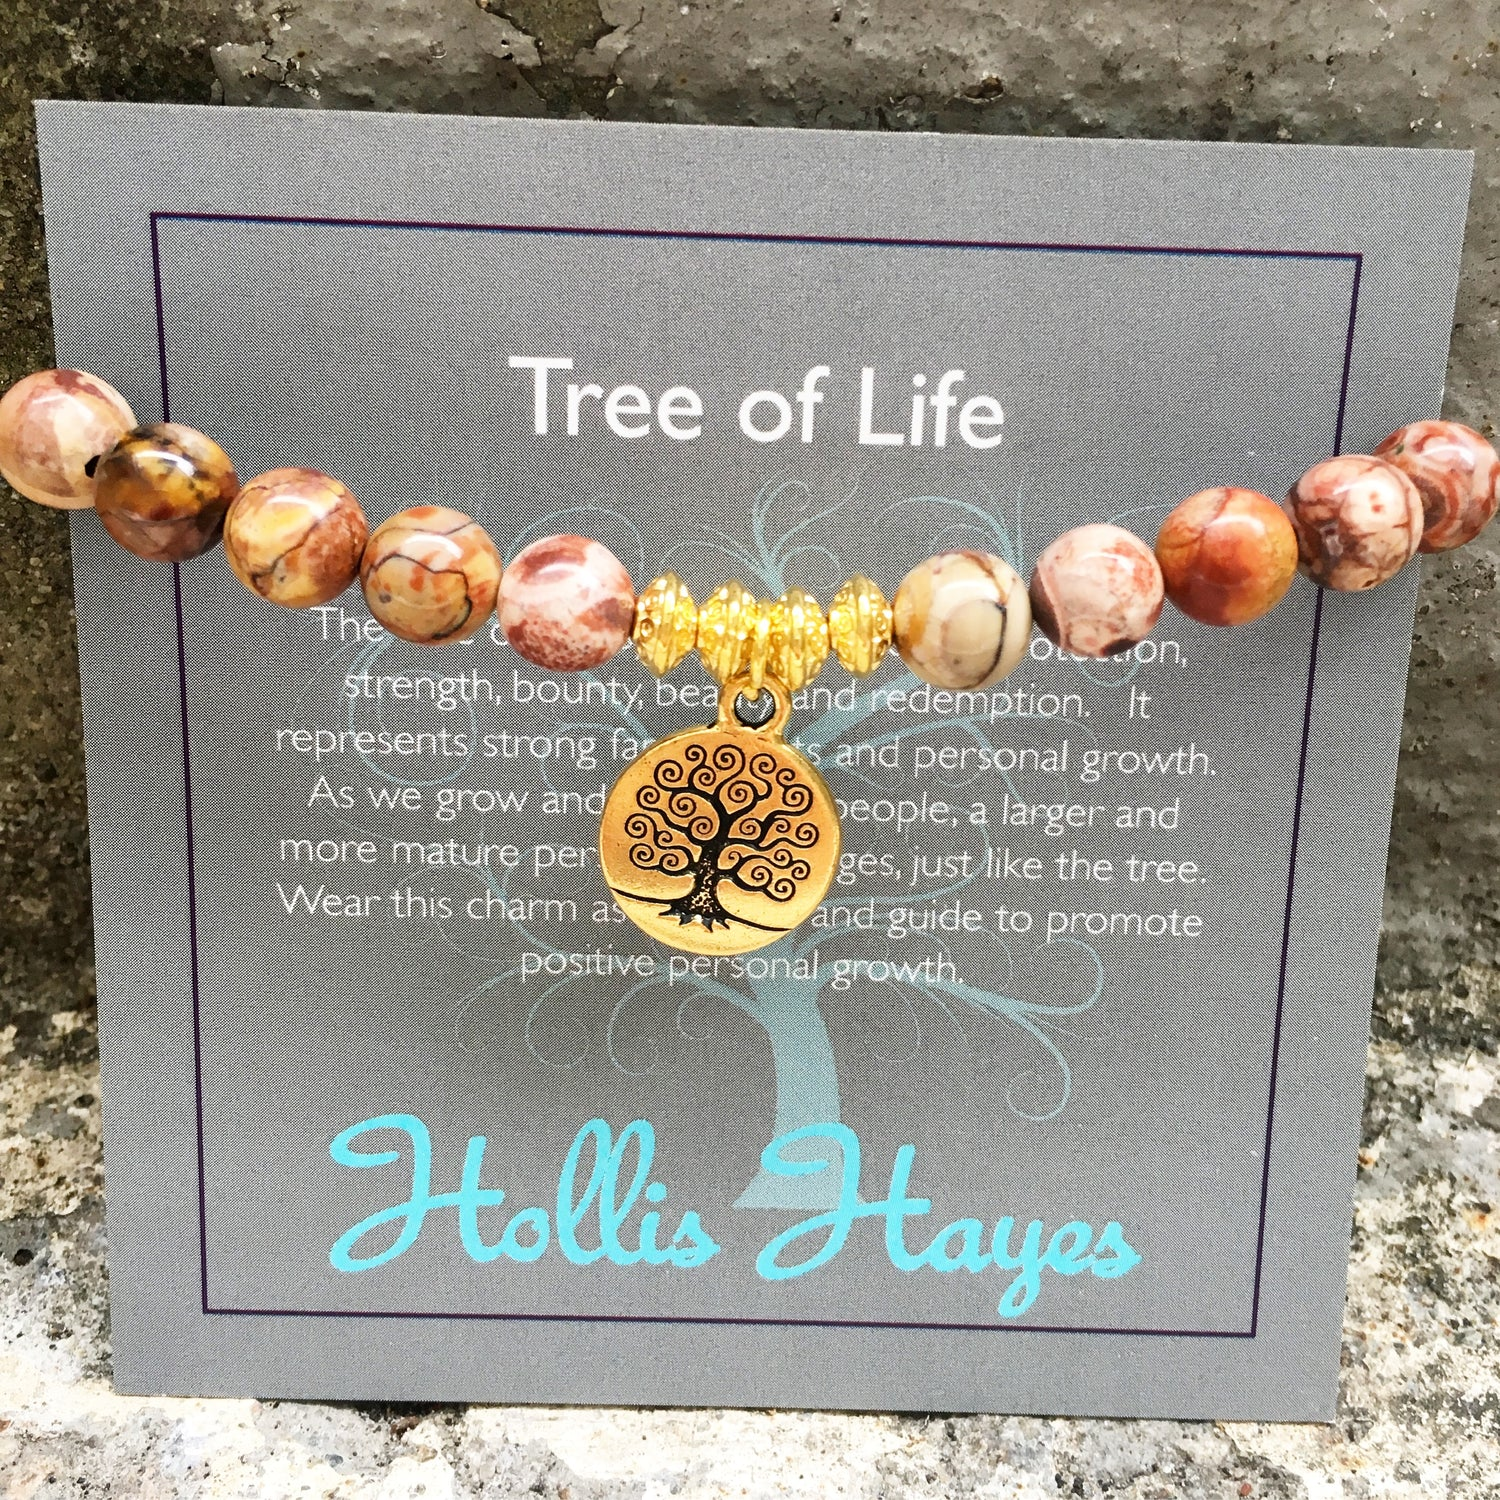 Tree of Life - Birdseye Rhyolite